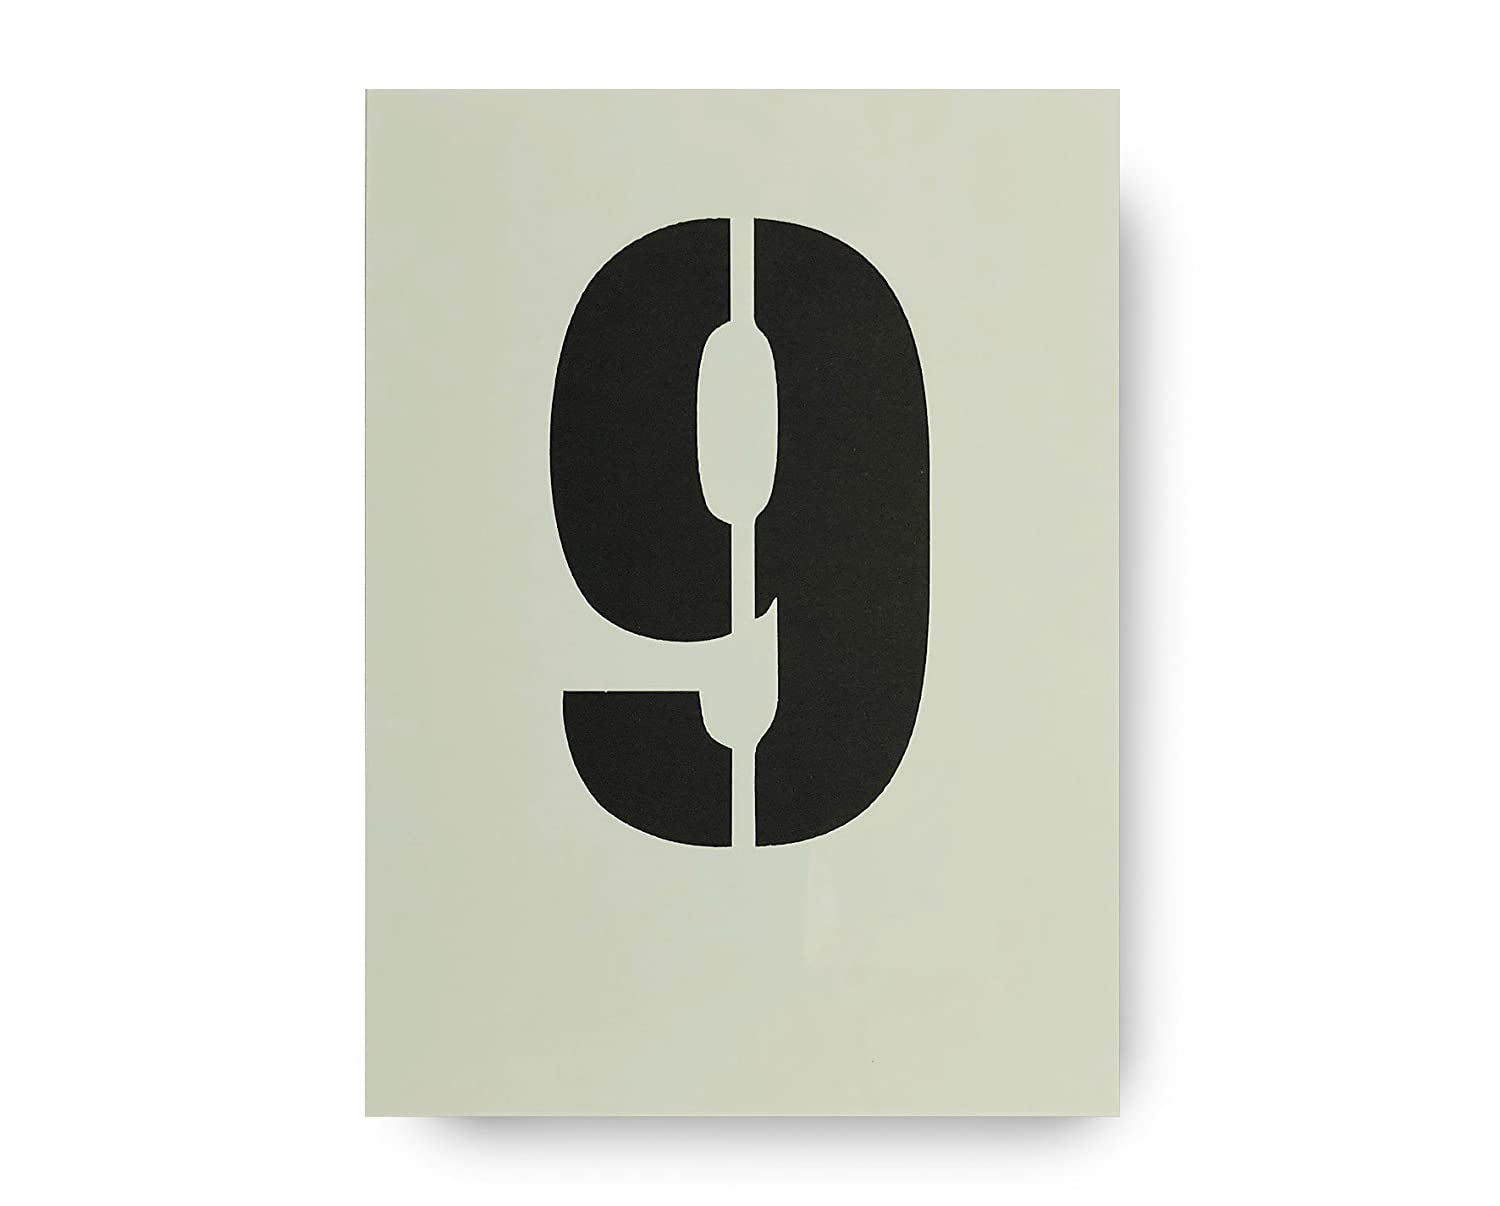 Big Number 9 Stencil 120mm 4 3/4 Inches Tall on Tough Durable Plastic Stencil Dovetails